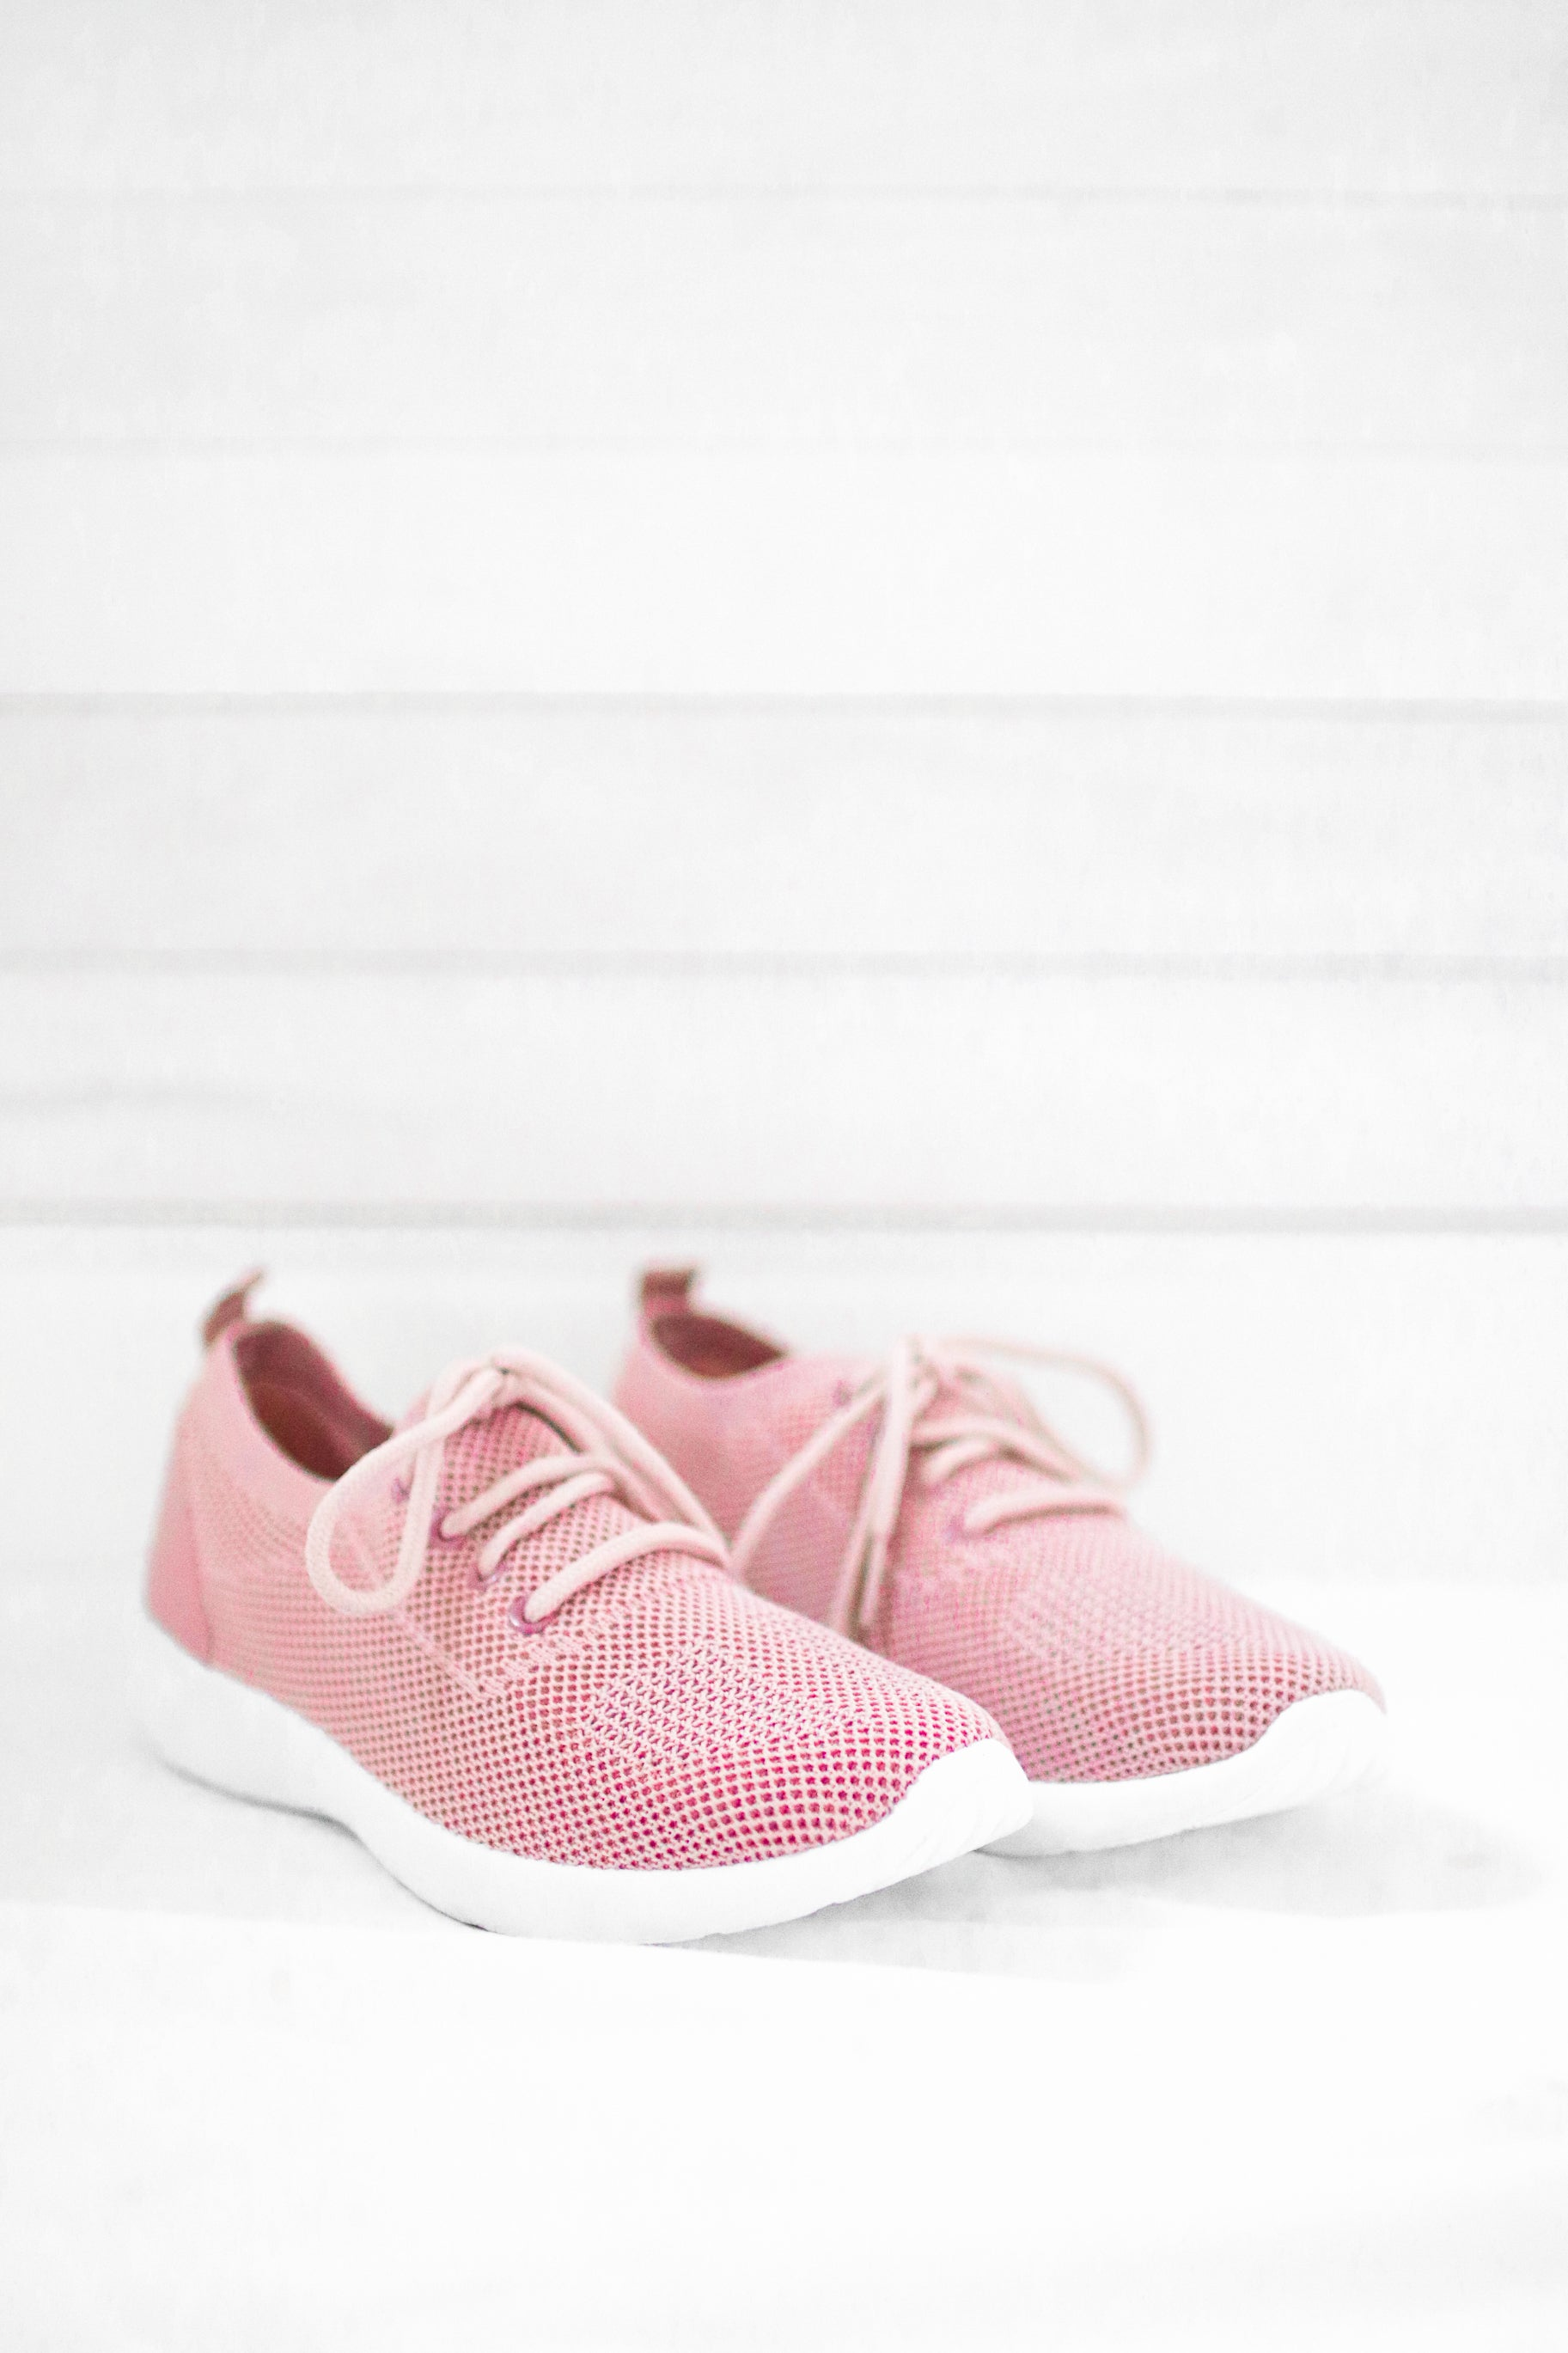 ELLA SNEAKERS IN PINK